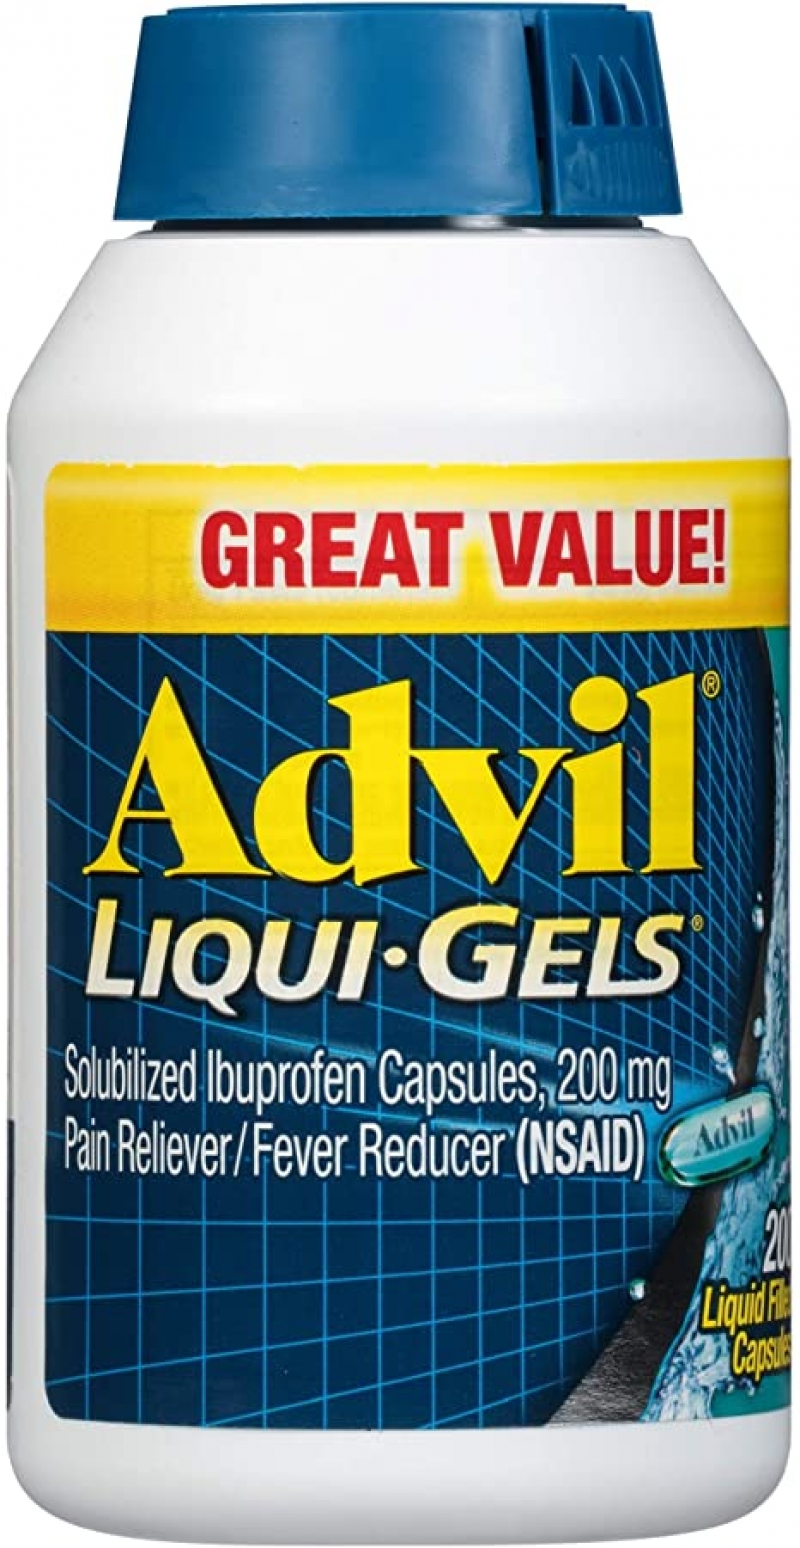 ihocon: Advil Pain Reliever and Fever Reducer, Solubilized Ibuprofen Mg, Liquid Fast Pain Relief,200 Count 止痛/退燒藥